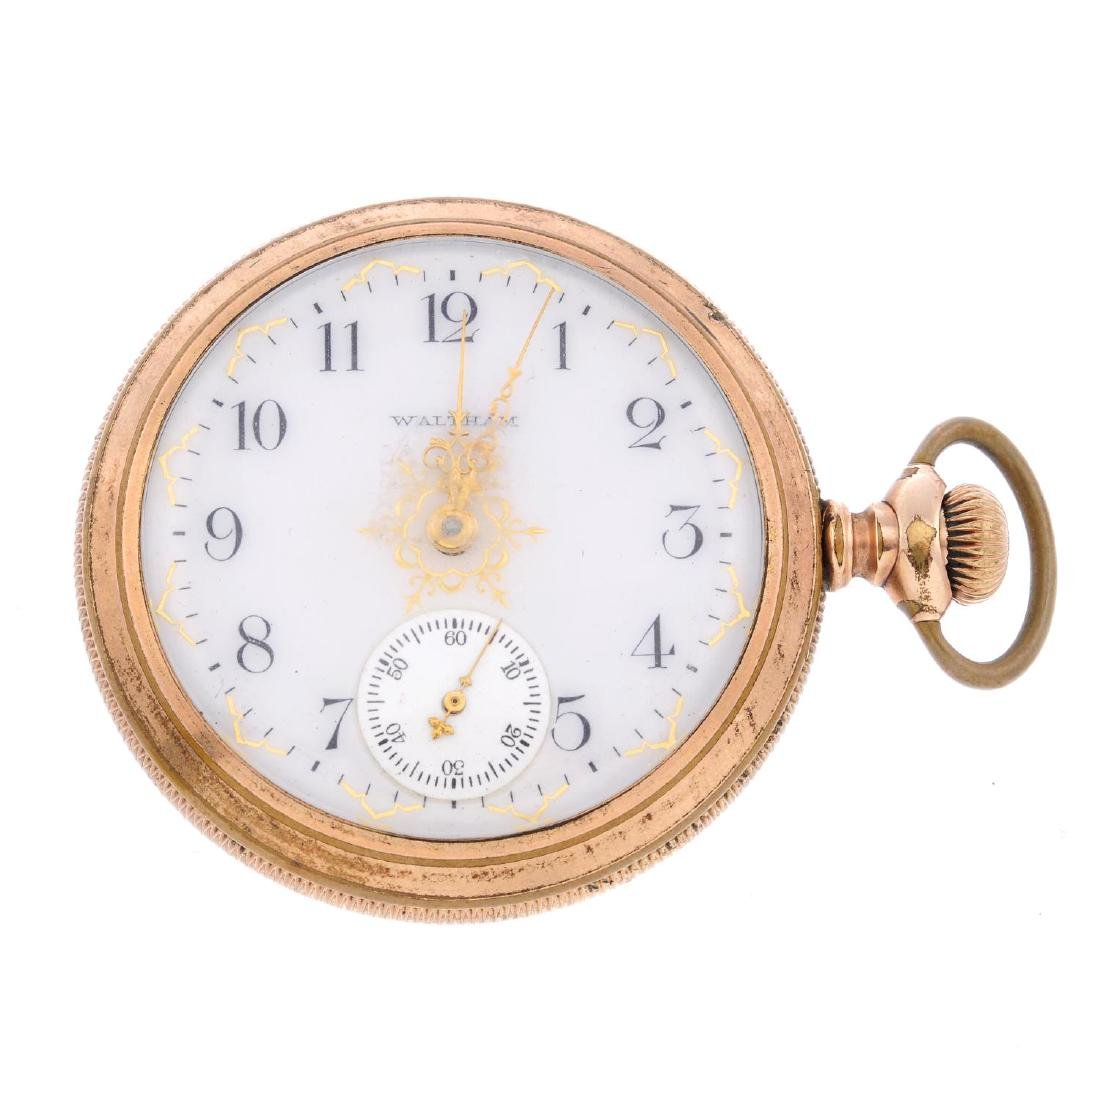 An open face pocket watch by Waltham. Gold plated case.